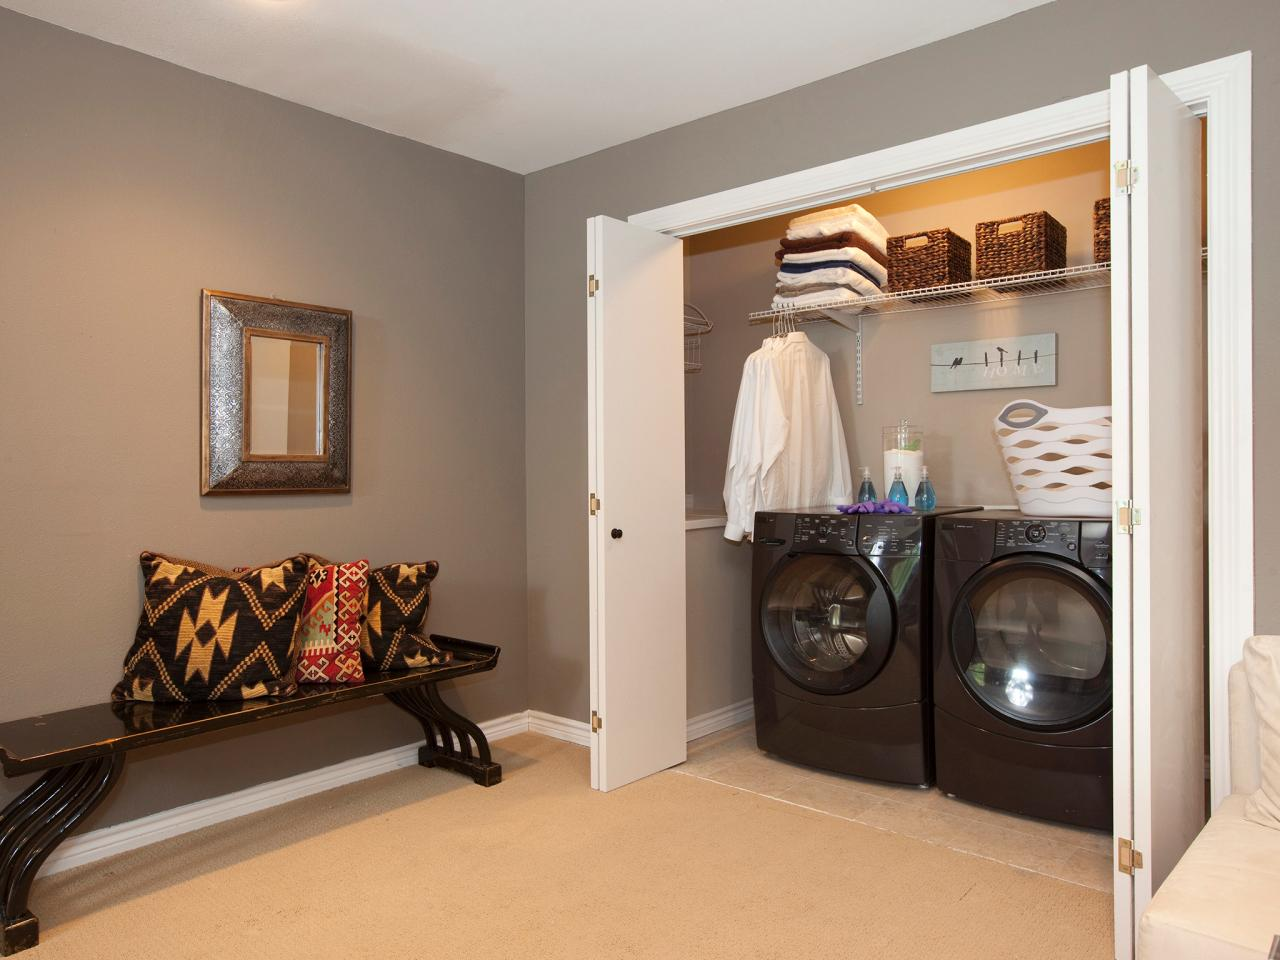 Laundry room ideas pictures options tips advice hgtv for Bathroom closet remodel